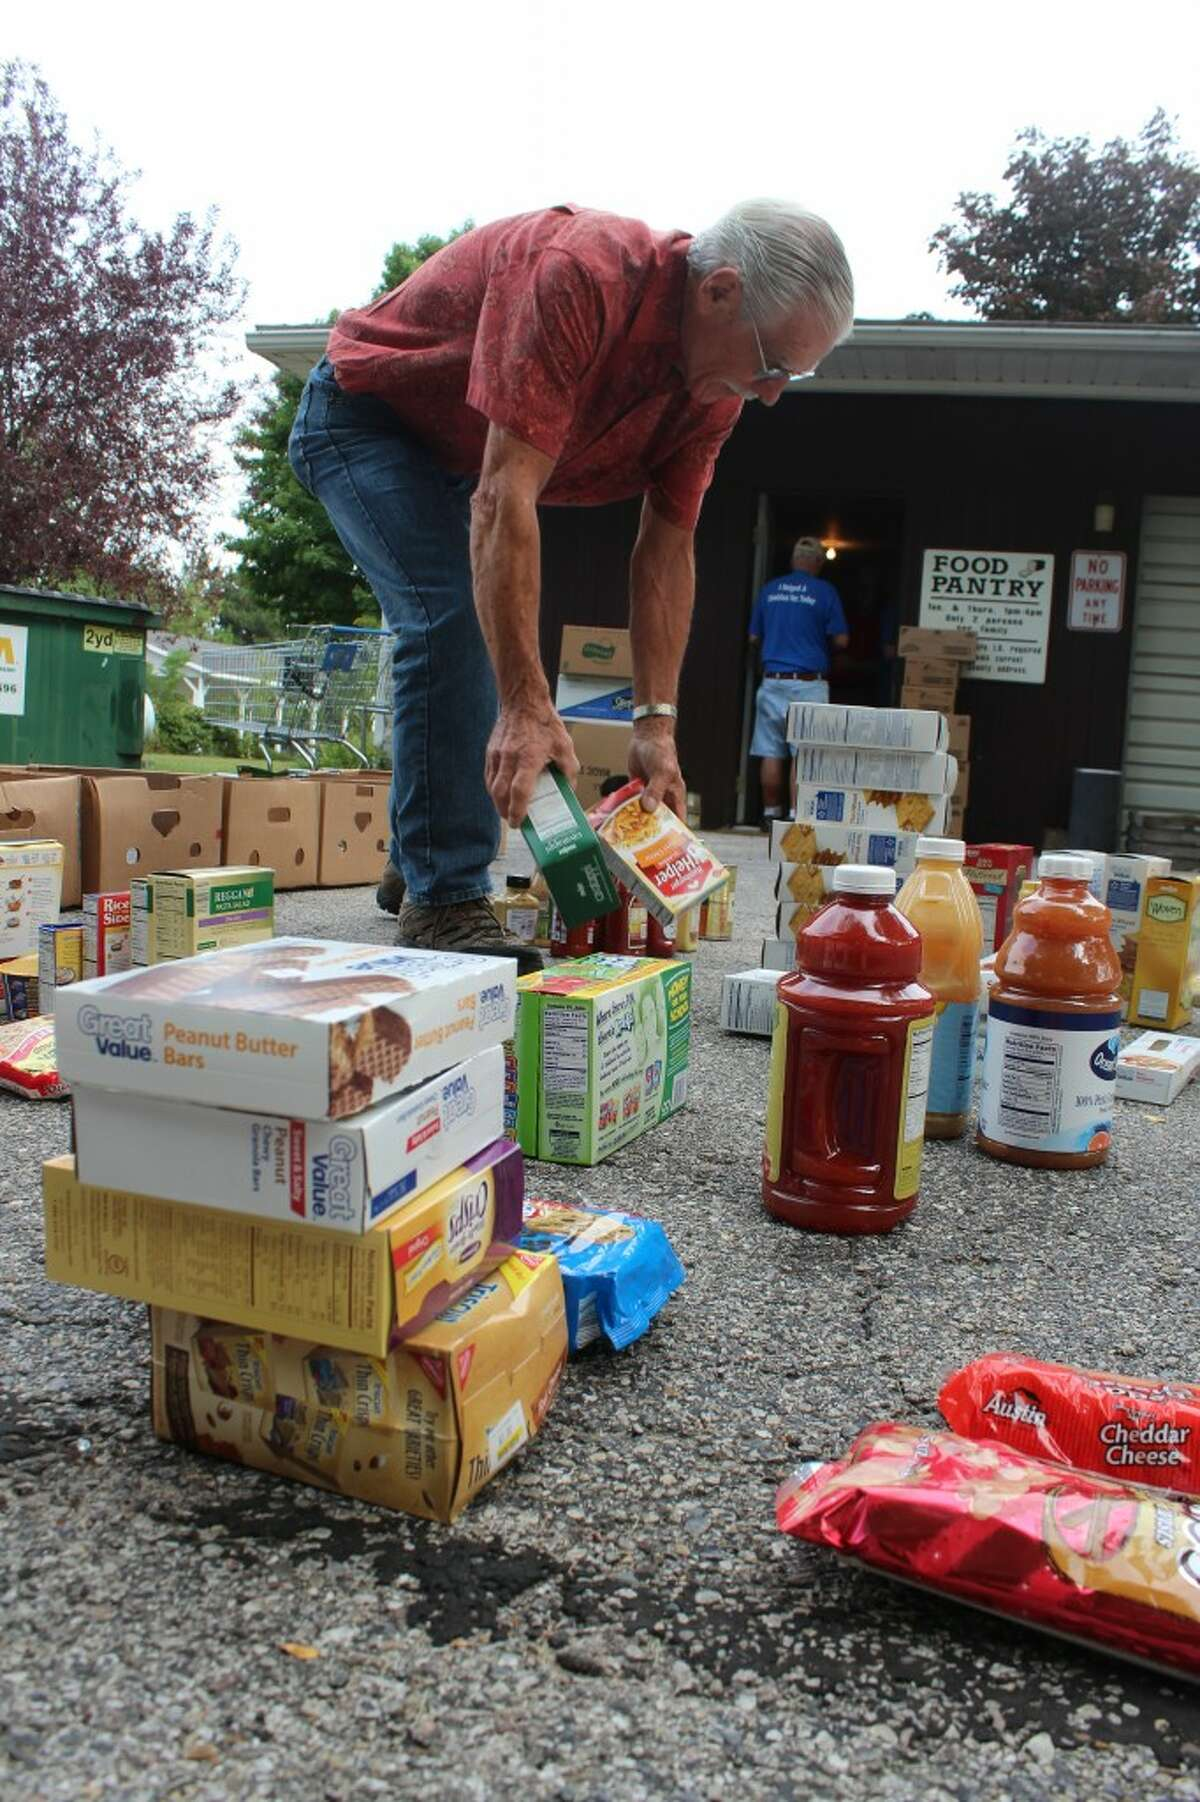 SORTING: Volunteer Russ Erbes sorts food items into piles after the pantry received a shipment from the Feeding America West Michigan Food Bank. The pantry is open from 1 to 4 p.m. on Tuesdays and Thursdays and is in need of donations.